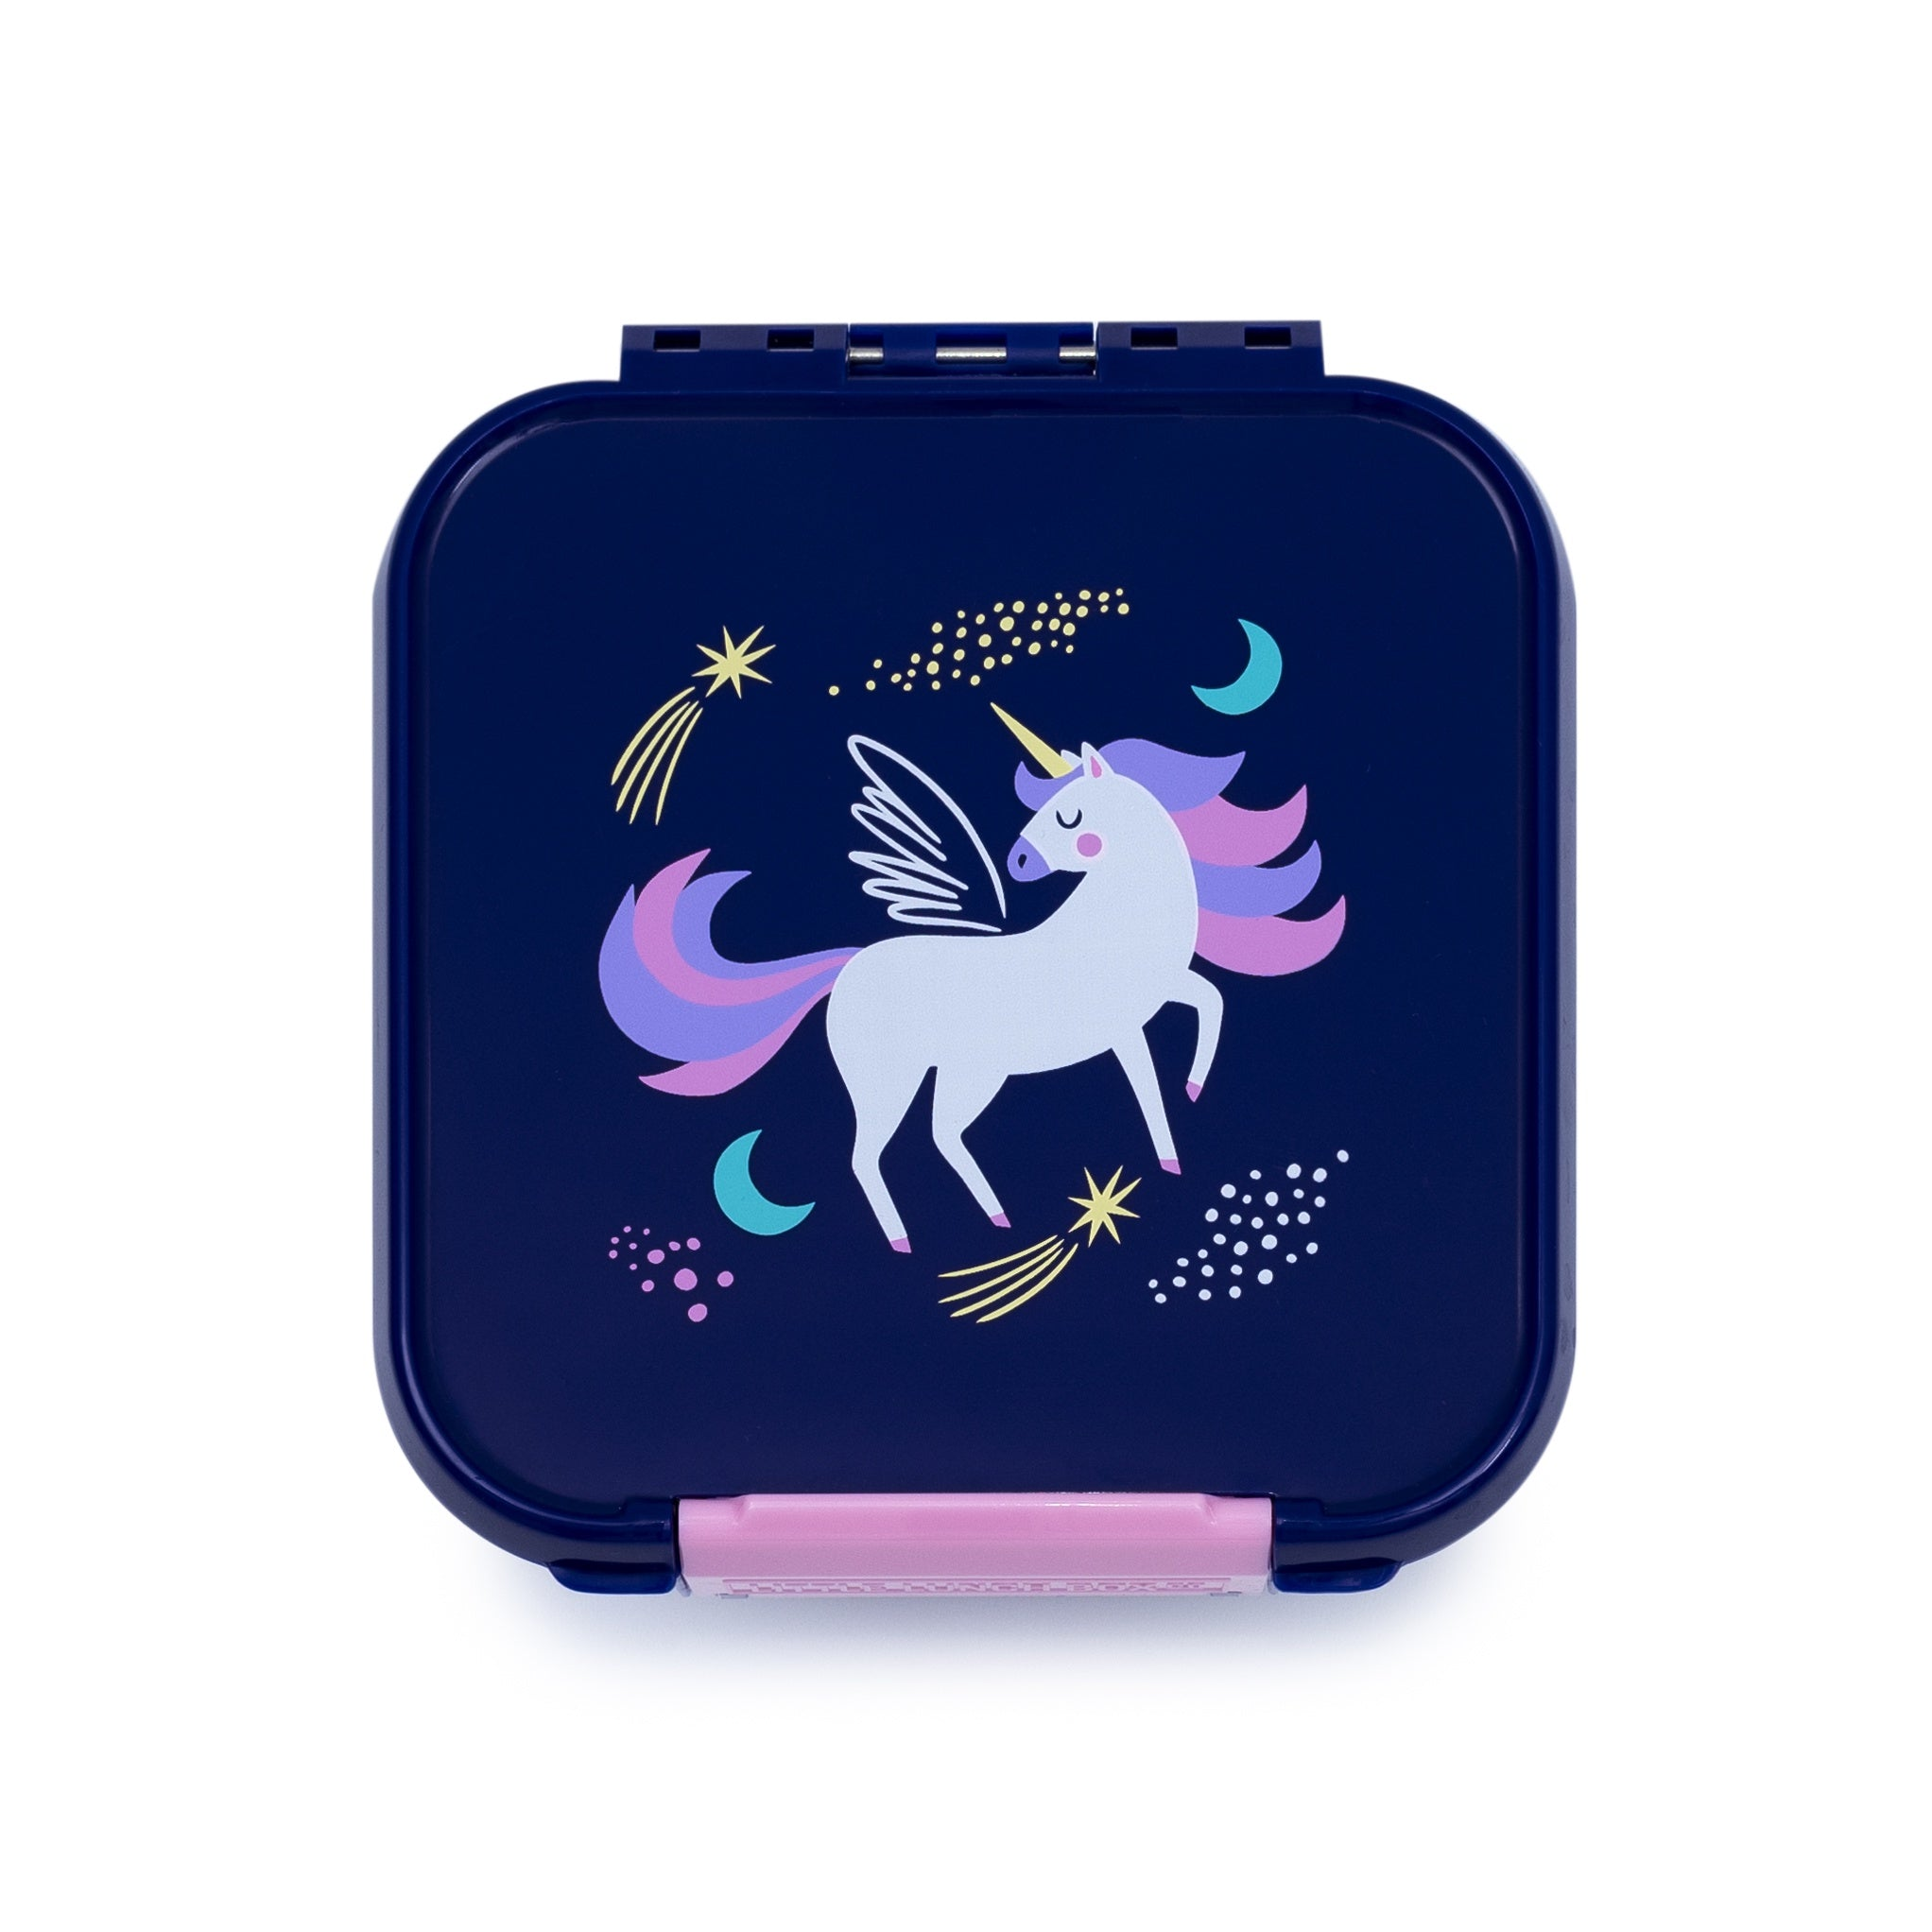 Bento Two - Magical Unicorn